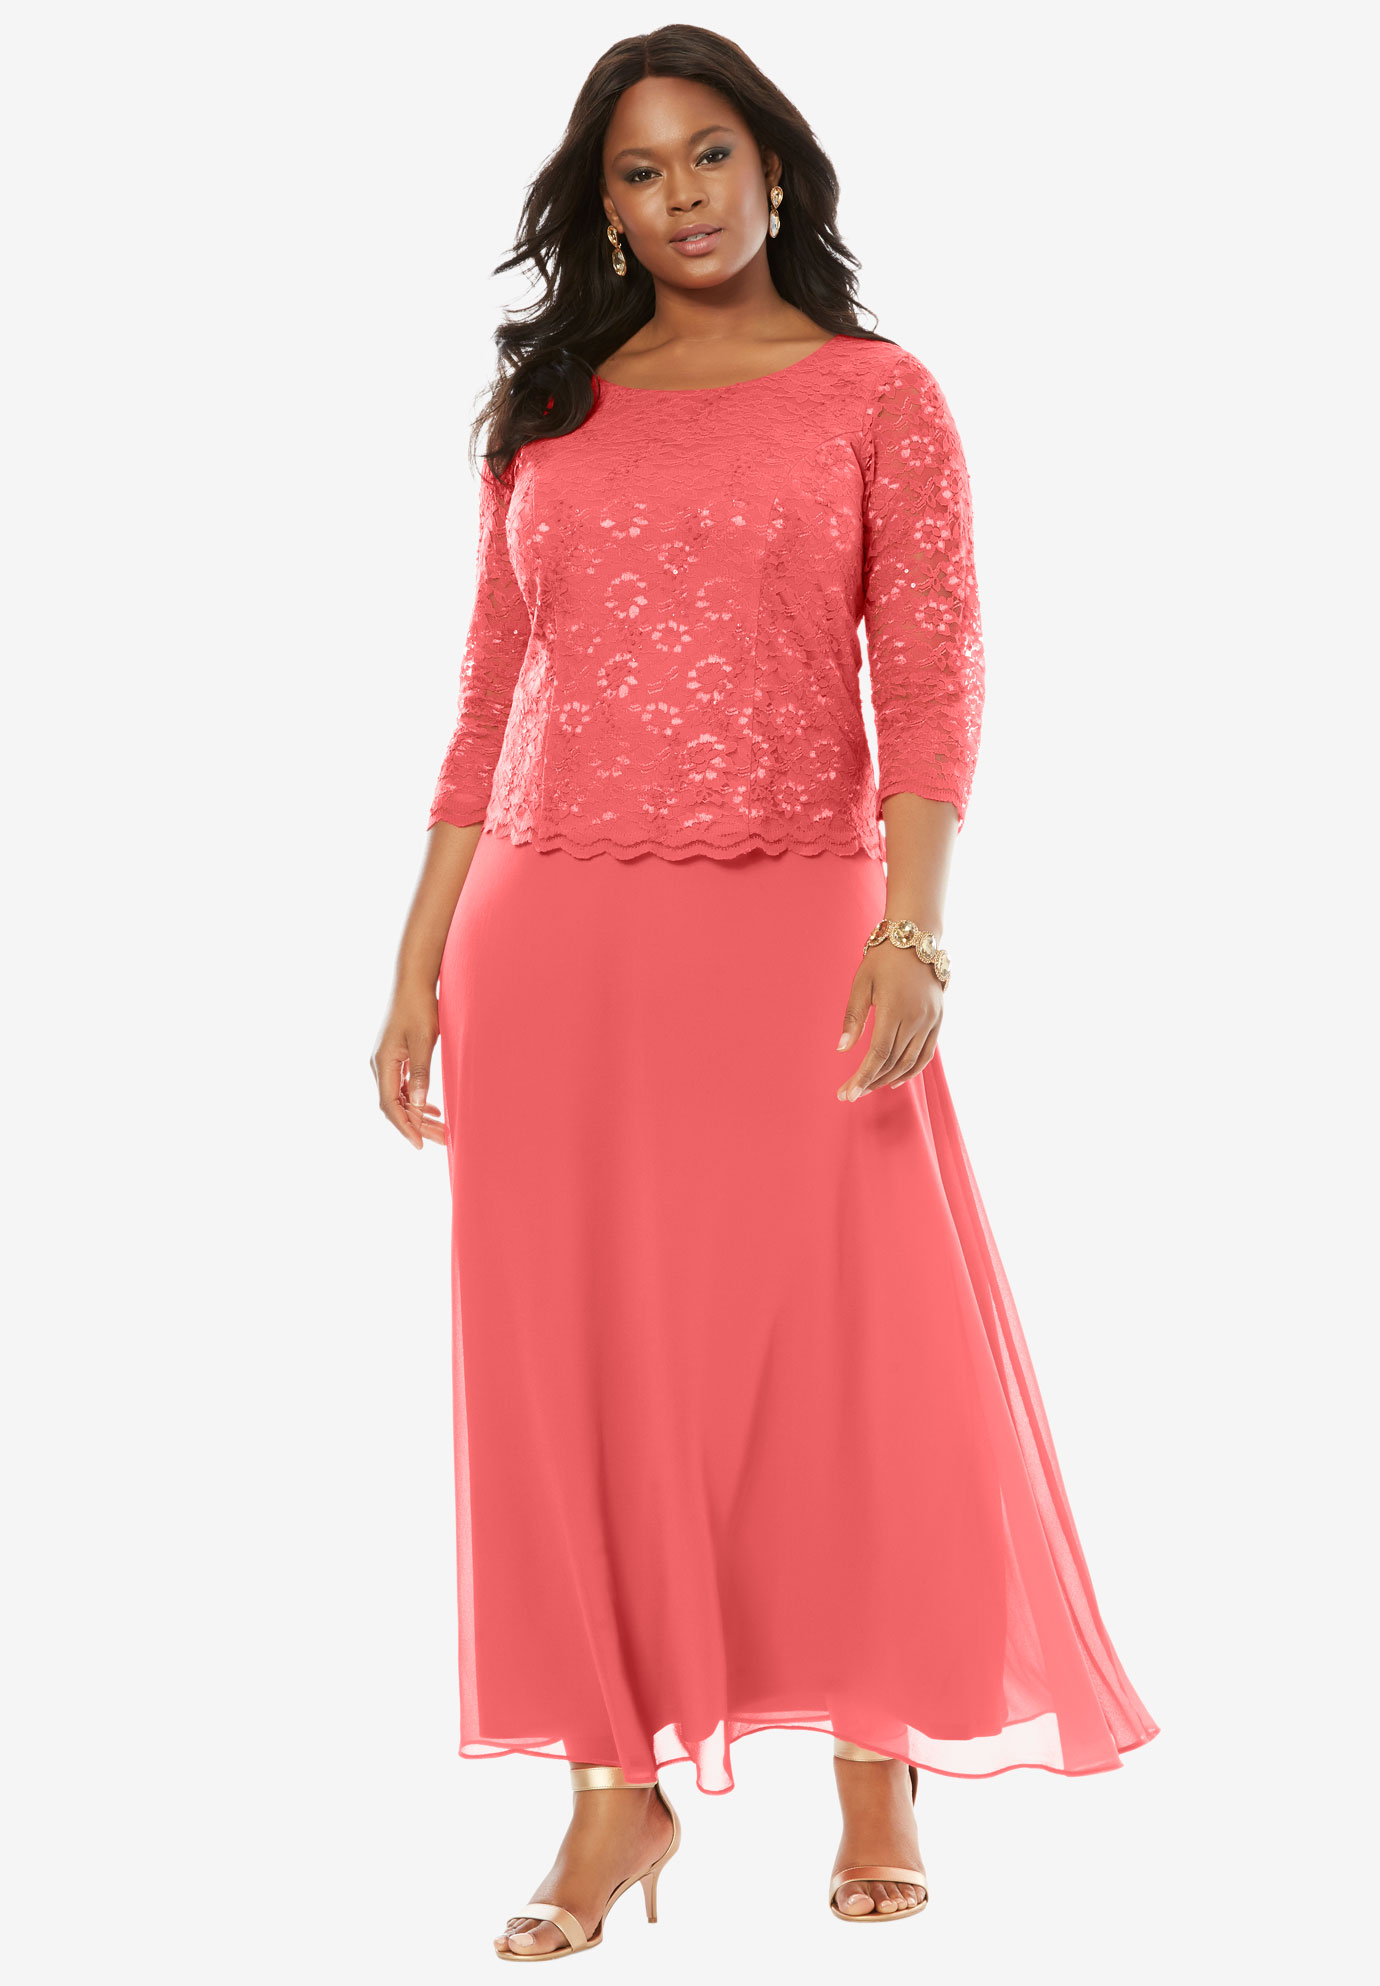 Lace Popover Dress Plus Size Evening Dresses Roamans